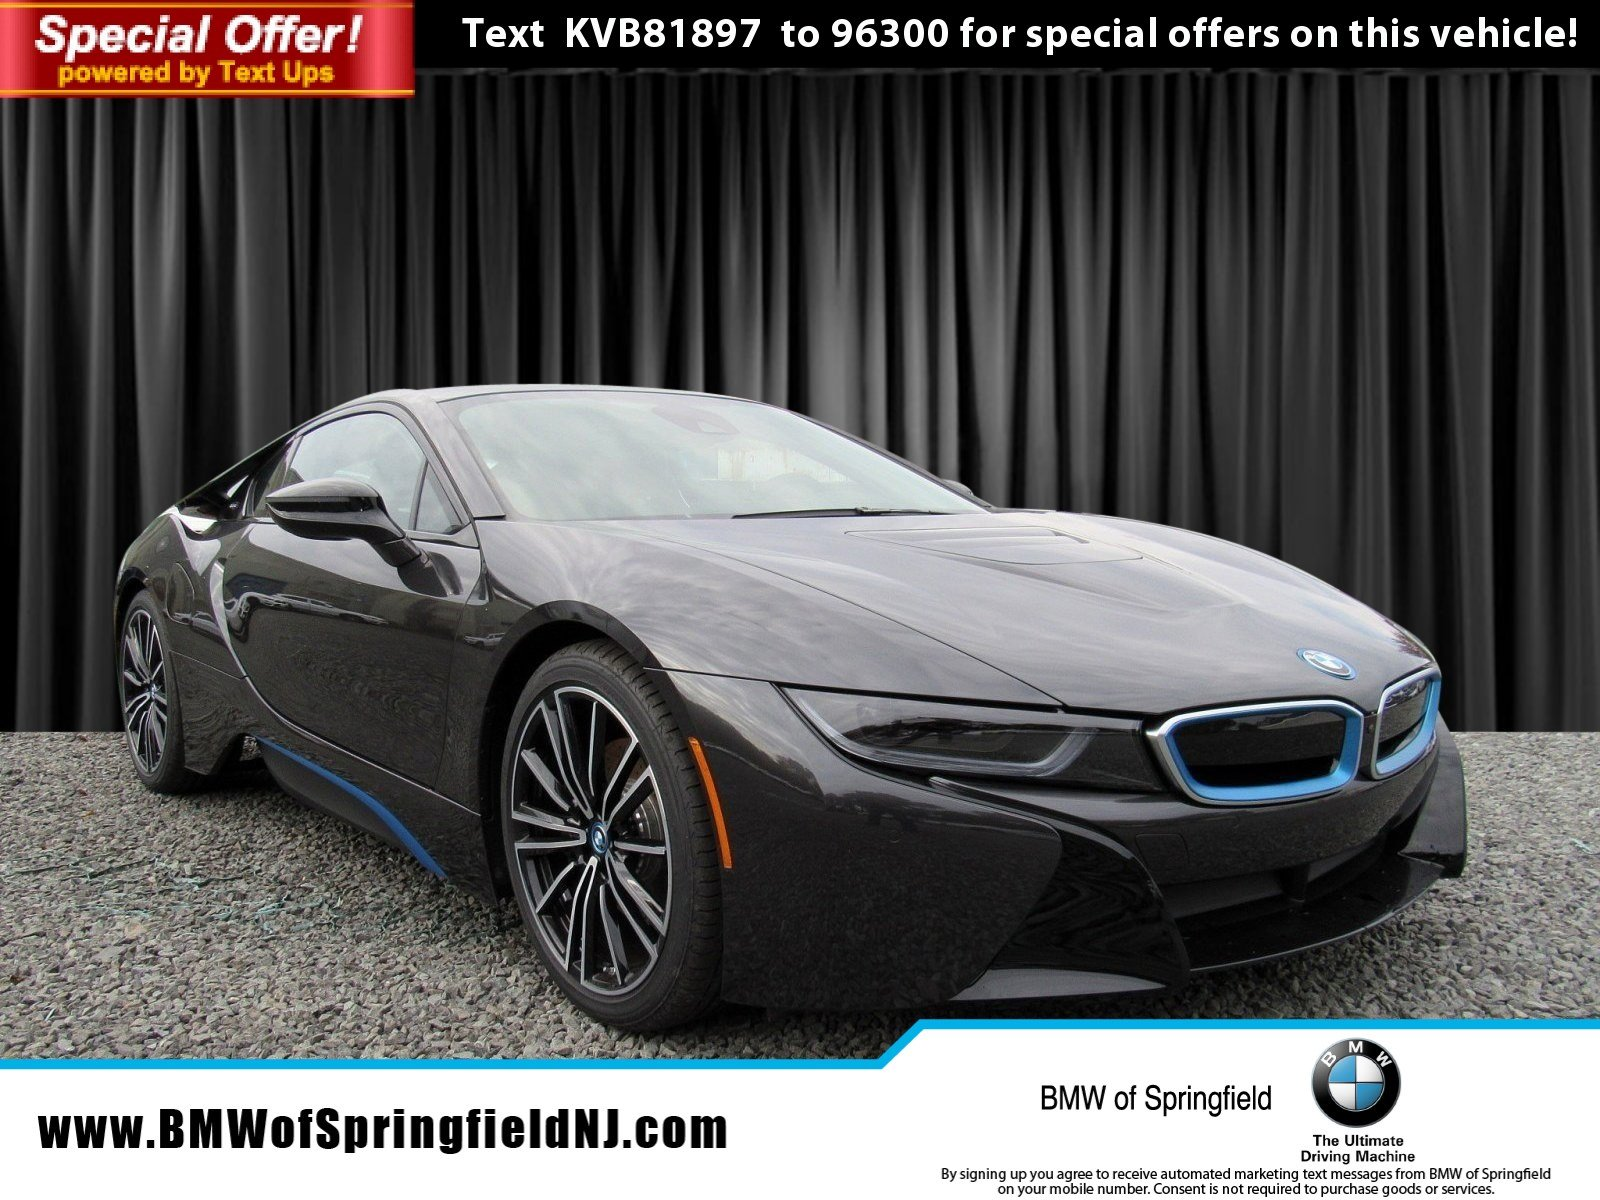 New 2019 Bmw I8 2dr Car Near Morris Township Eb313 Celebrity